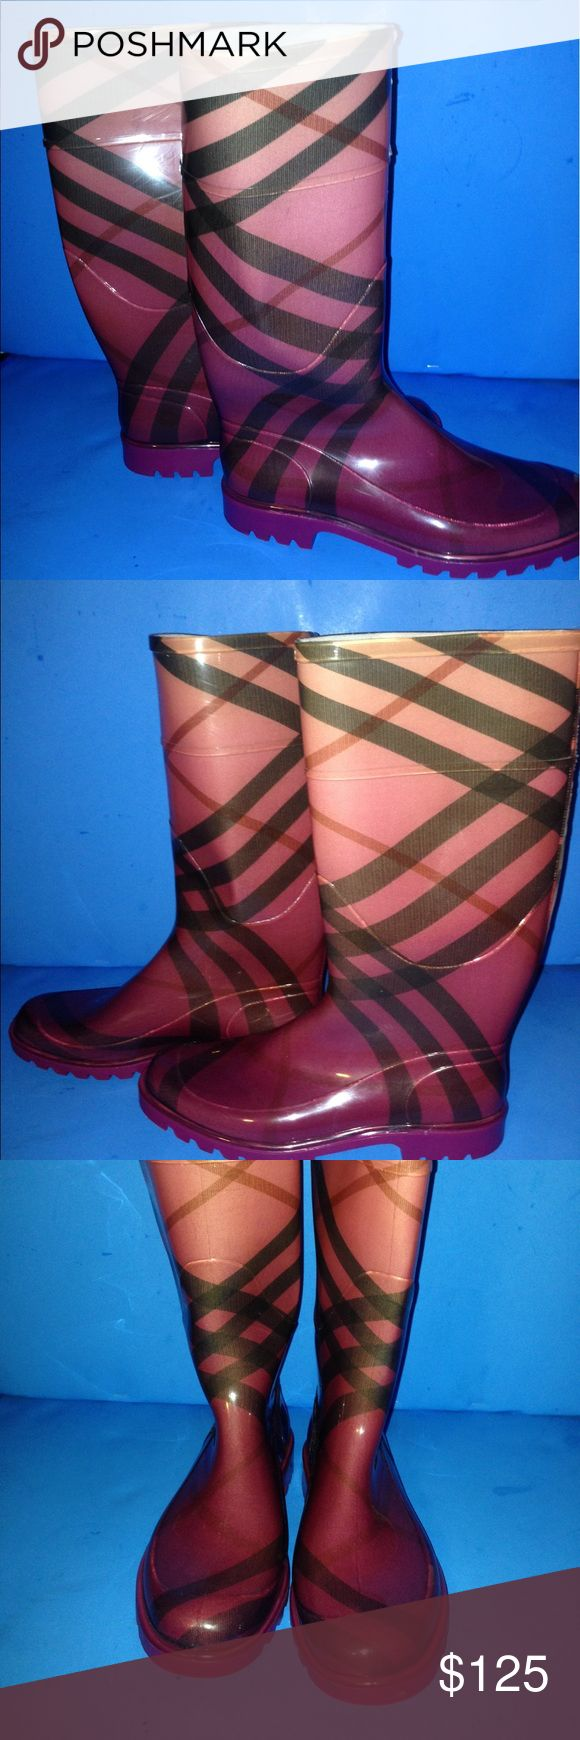 "BURBERRY PINK RUBBER RAIN BOOT SIZE 9 DESCRIPTION Pink House Check Rubber Rain Boots Size 39**Size. 8.5 in the U.S/ Please know your size in this style as this designer tends to run small**  Heel 1"" Shaft measurement 13"" Calf circumference 15"" Pull on used in good condition Burberry Shoes Winter & Rain Boots"